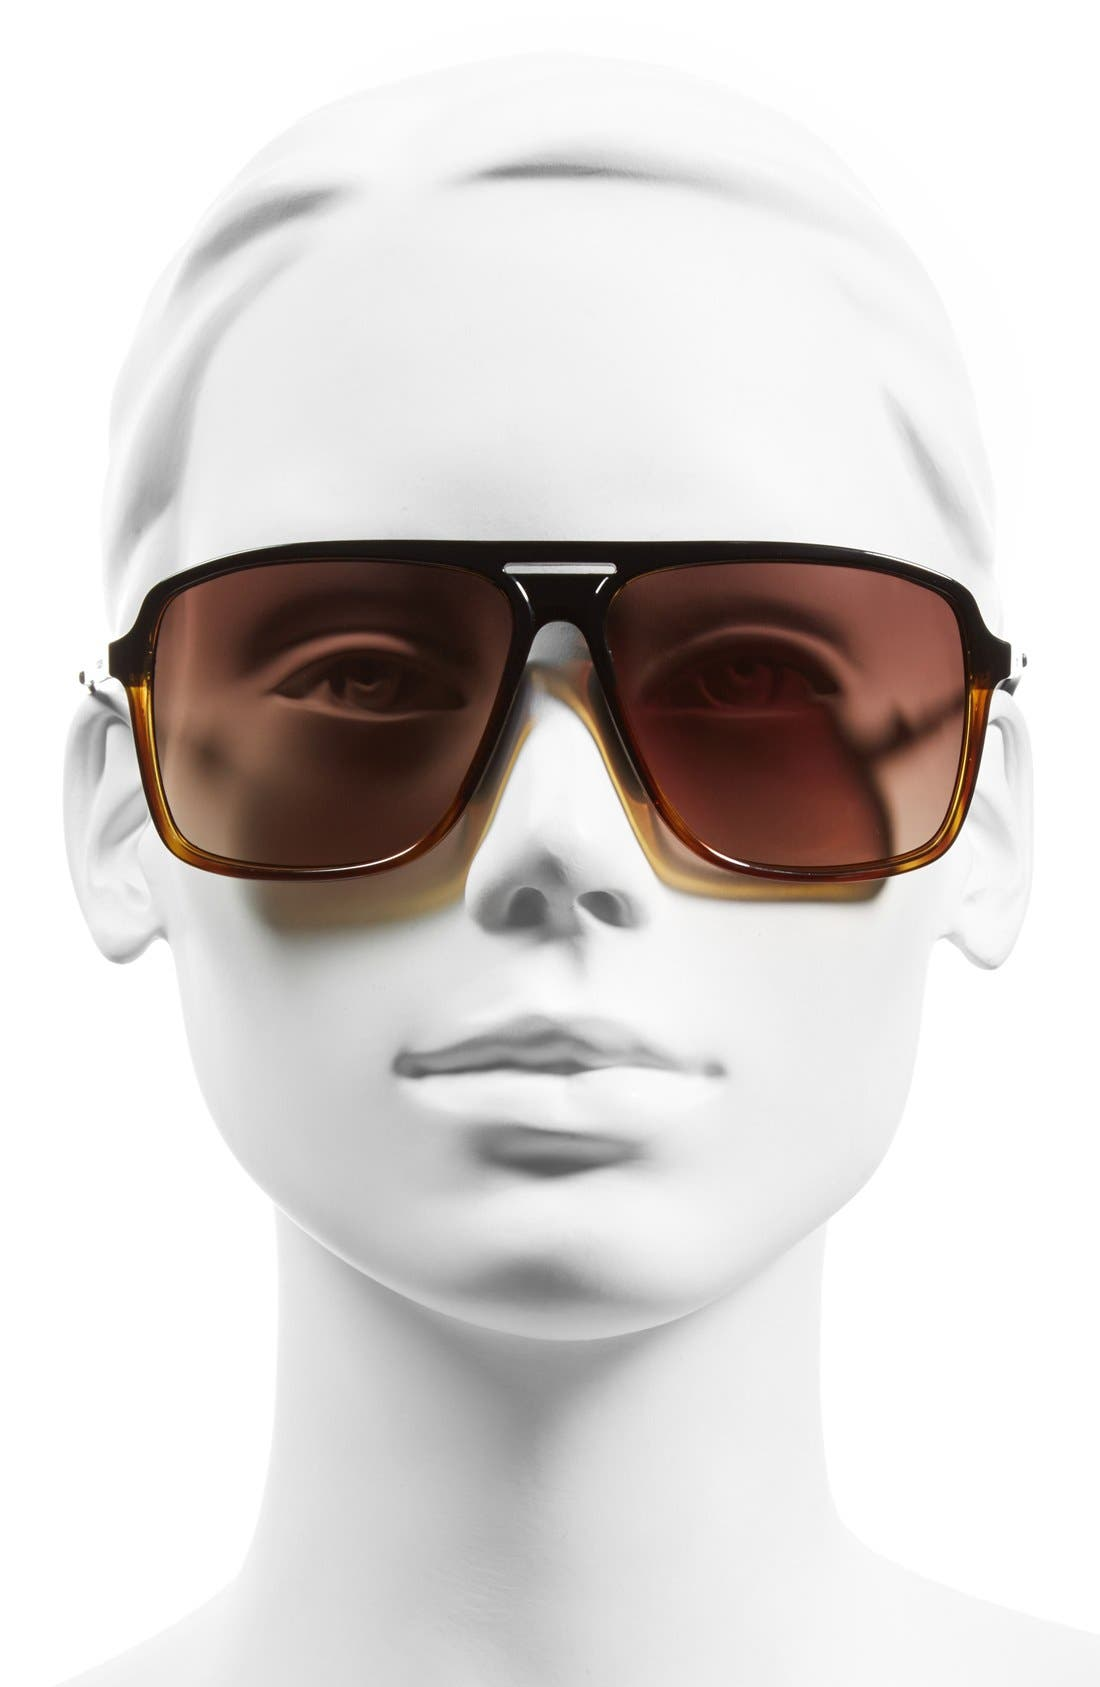 'Hotwax' 60mm Navigator Sunglasses,                             Alternate thumbnail 2, color,                             003